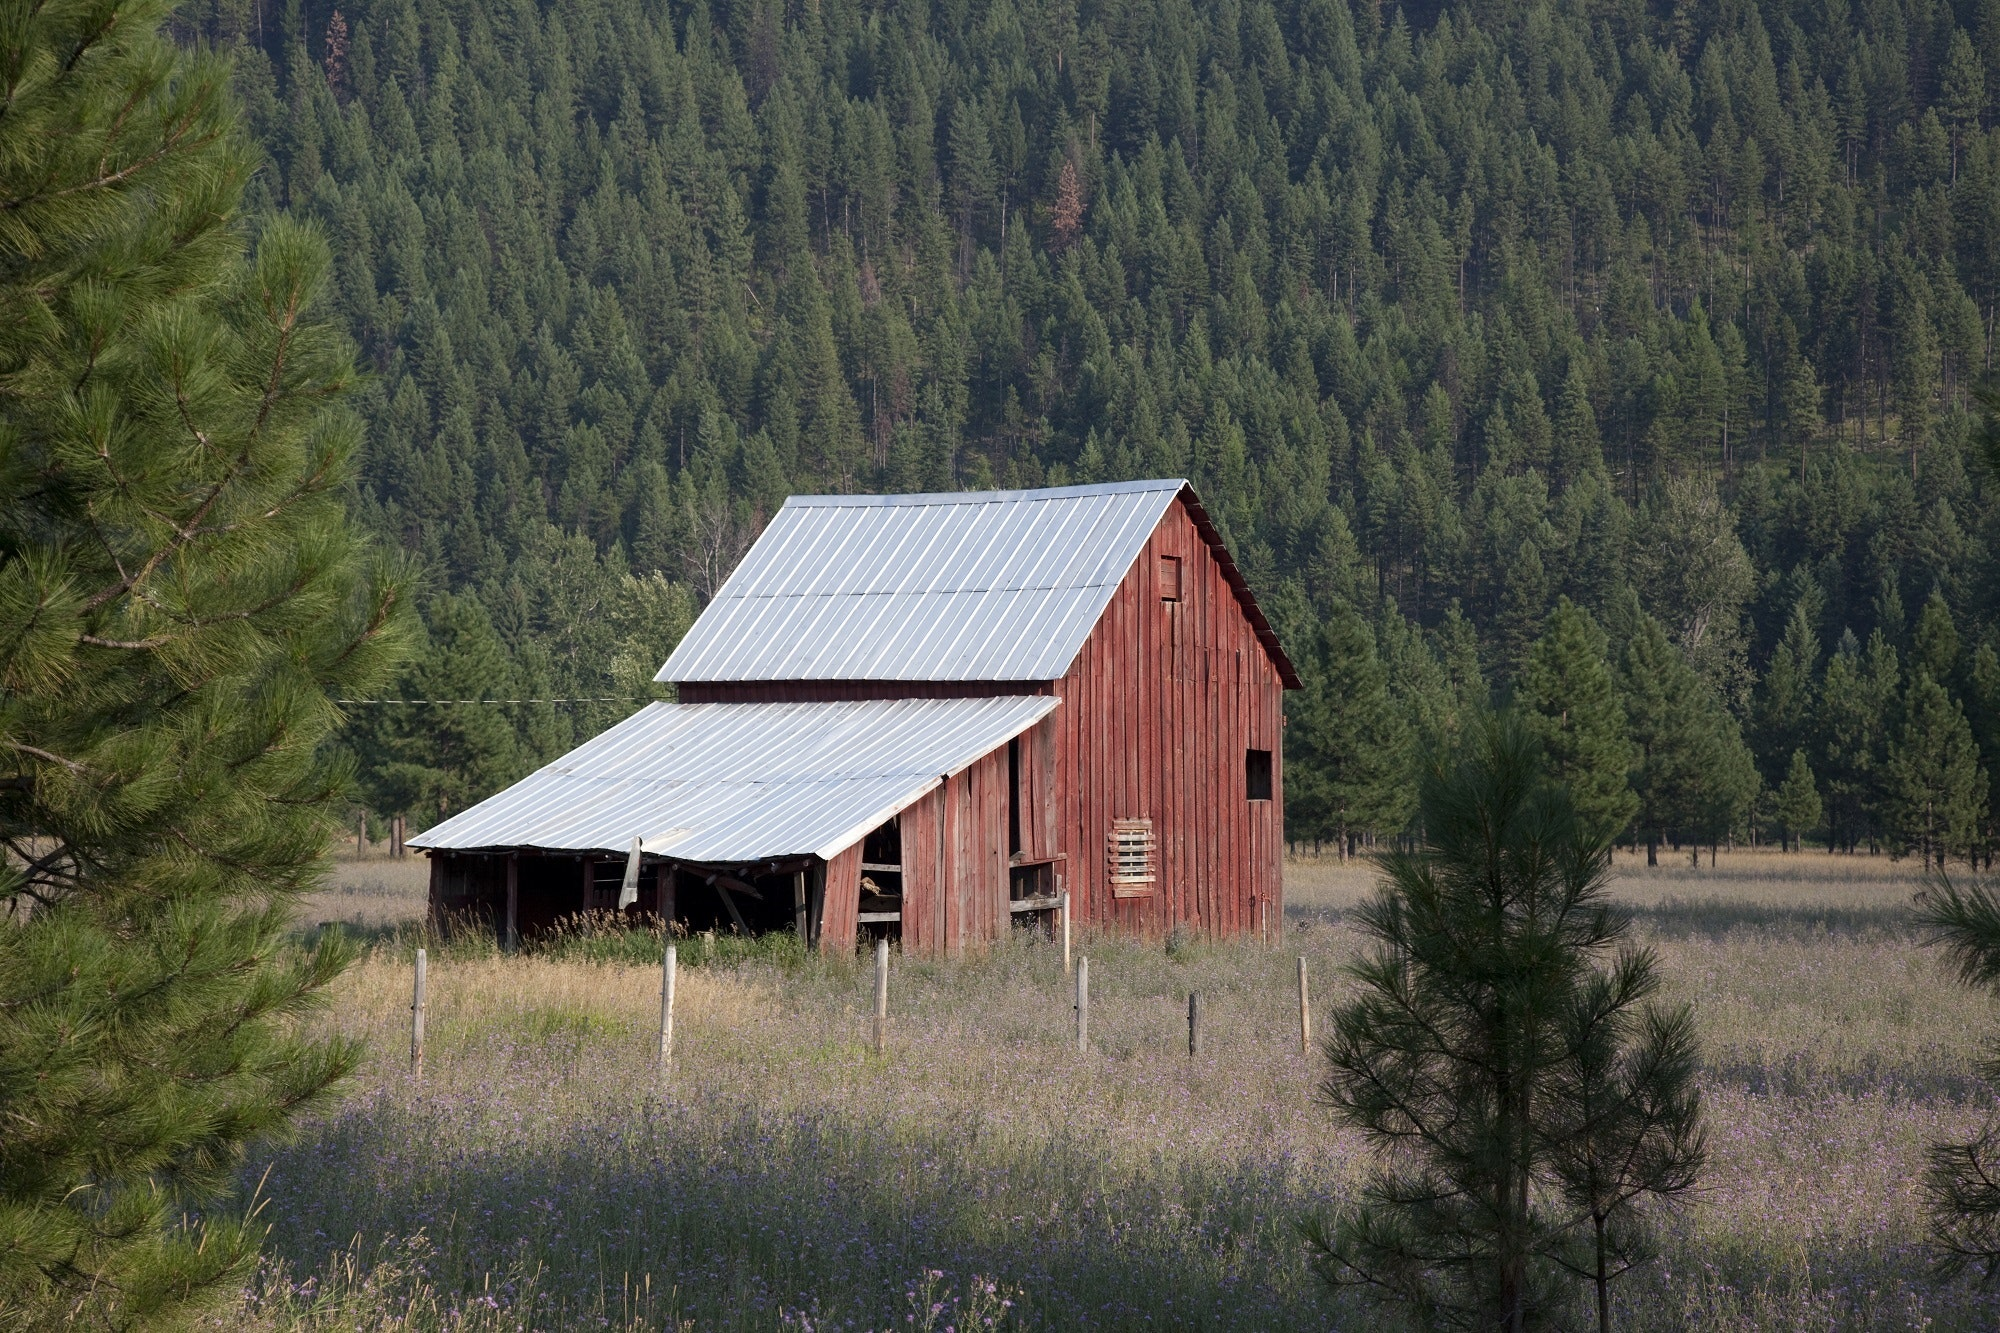 Red Wooden Barn during Daytime, Abandoned, Landscape, Vintage, Trees, HQ Photo